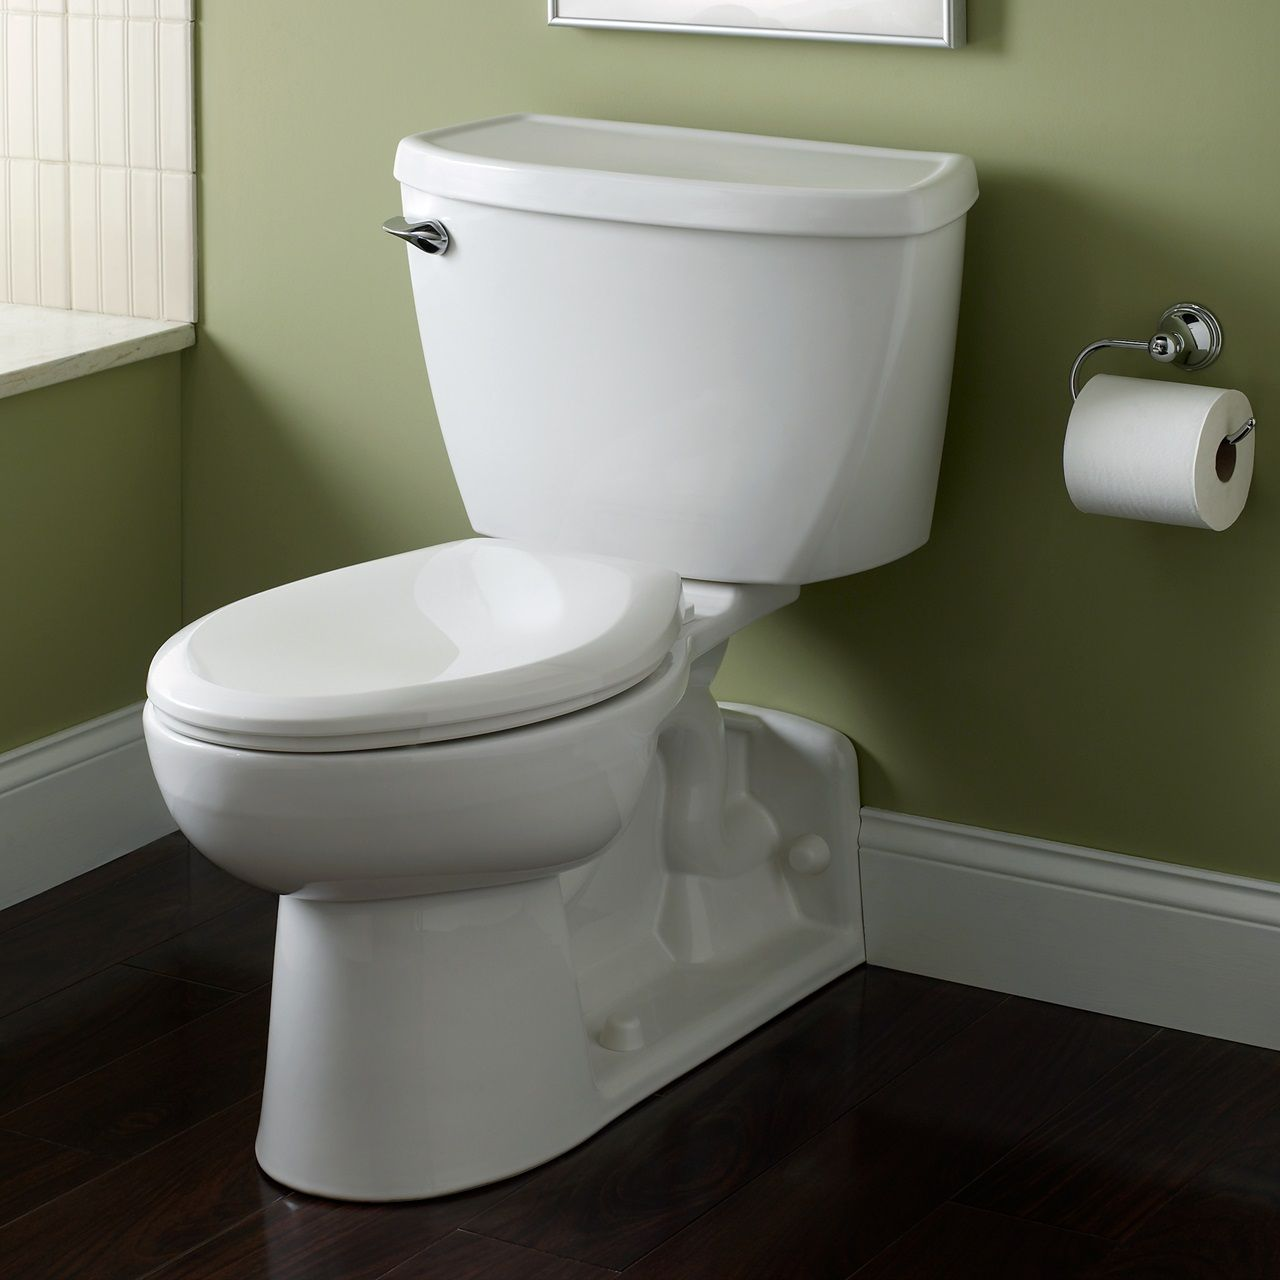 Commercial Toilets - Yorkville 1.1 gpf FloWise Right Height ...